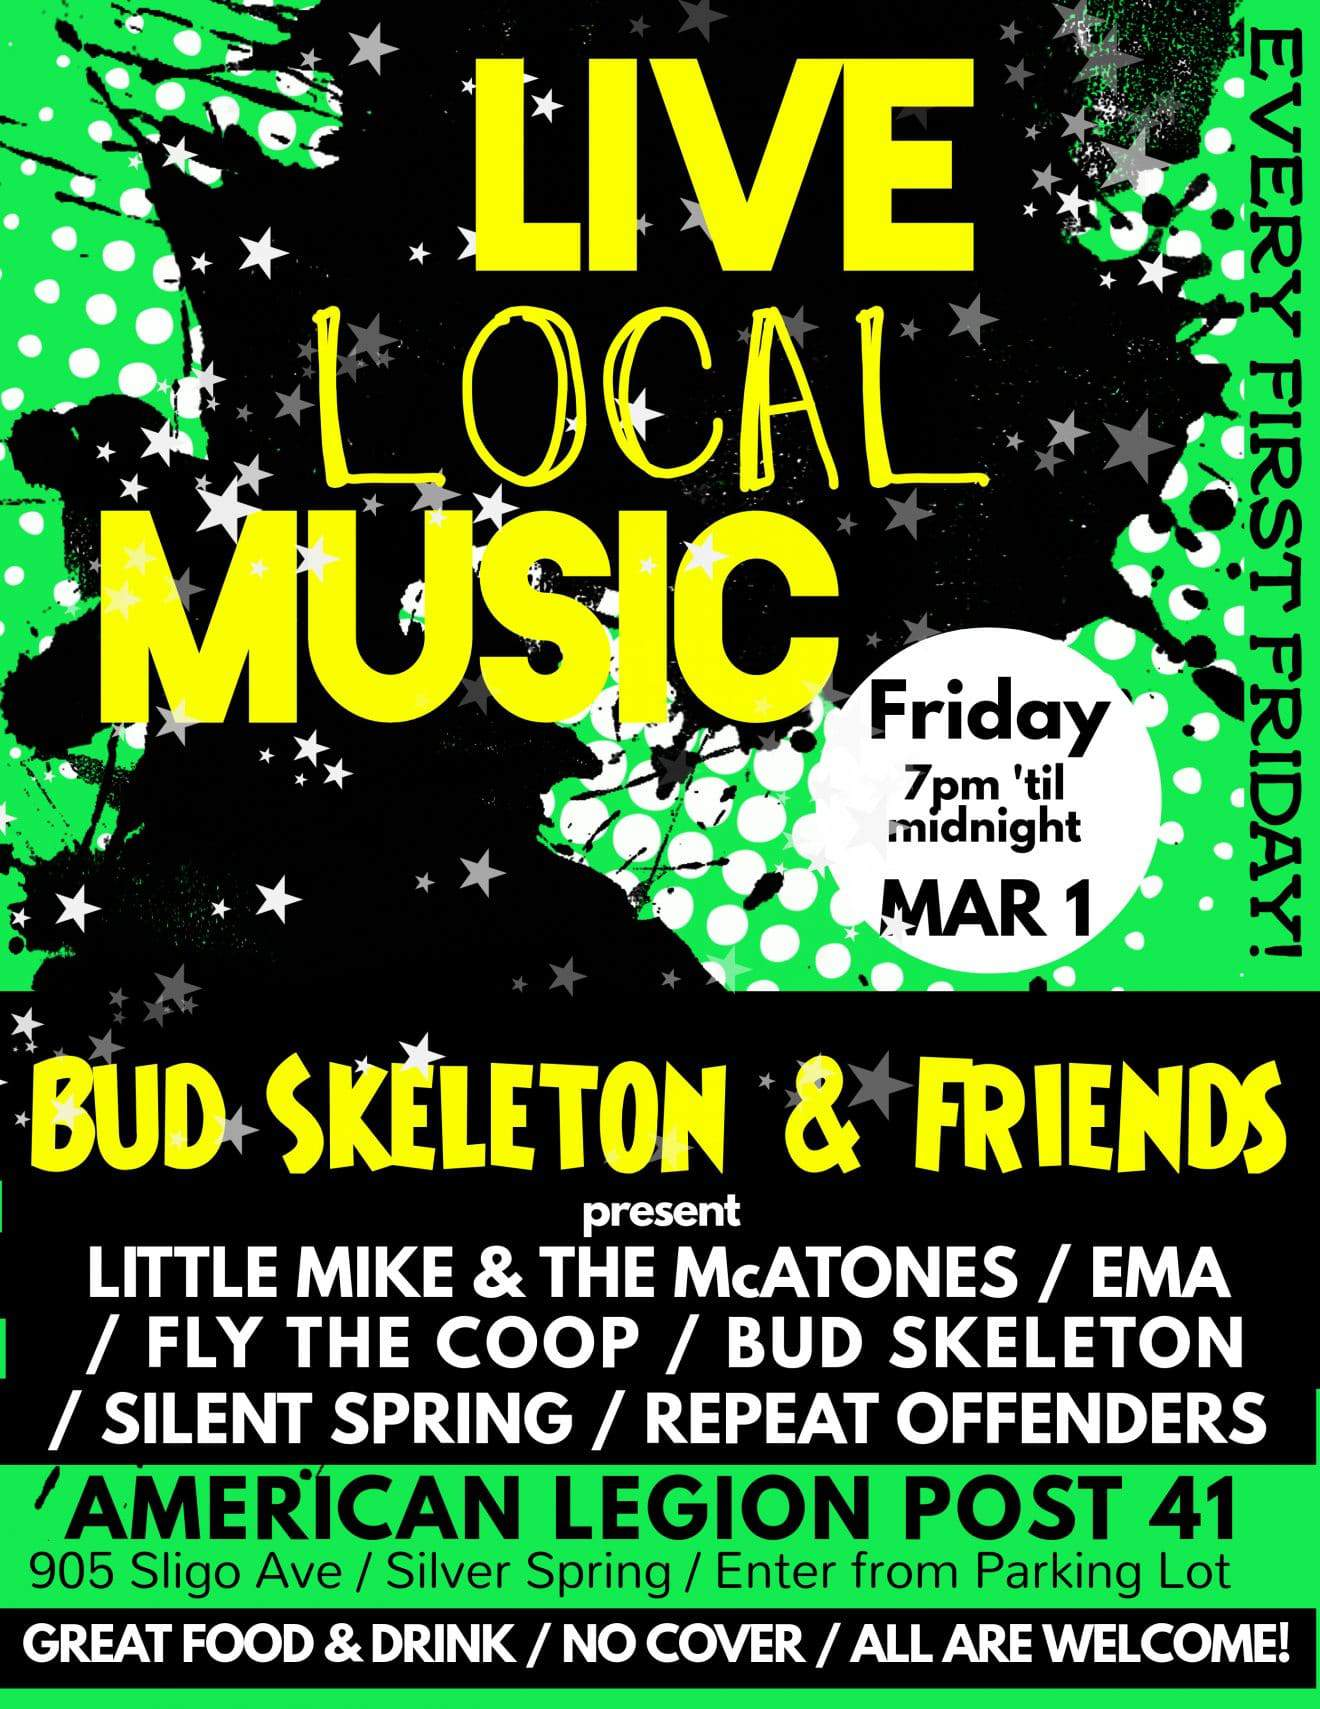 Bud Skeleton & Friends - Live Music!